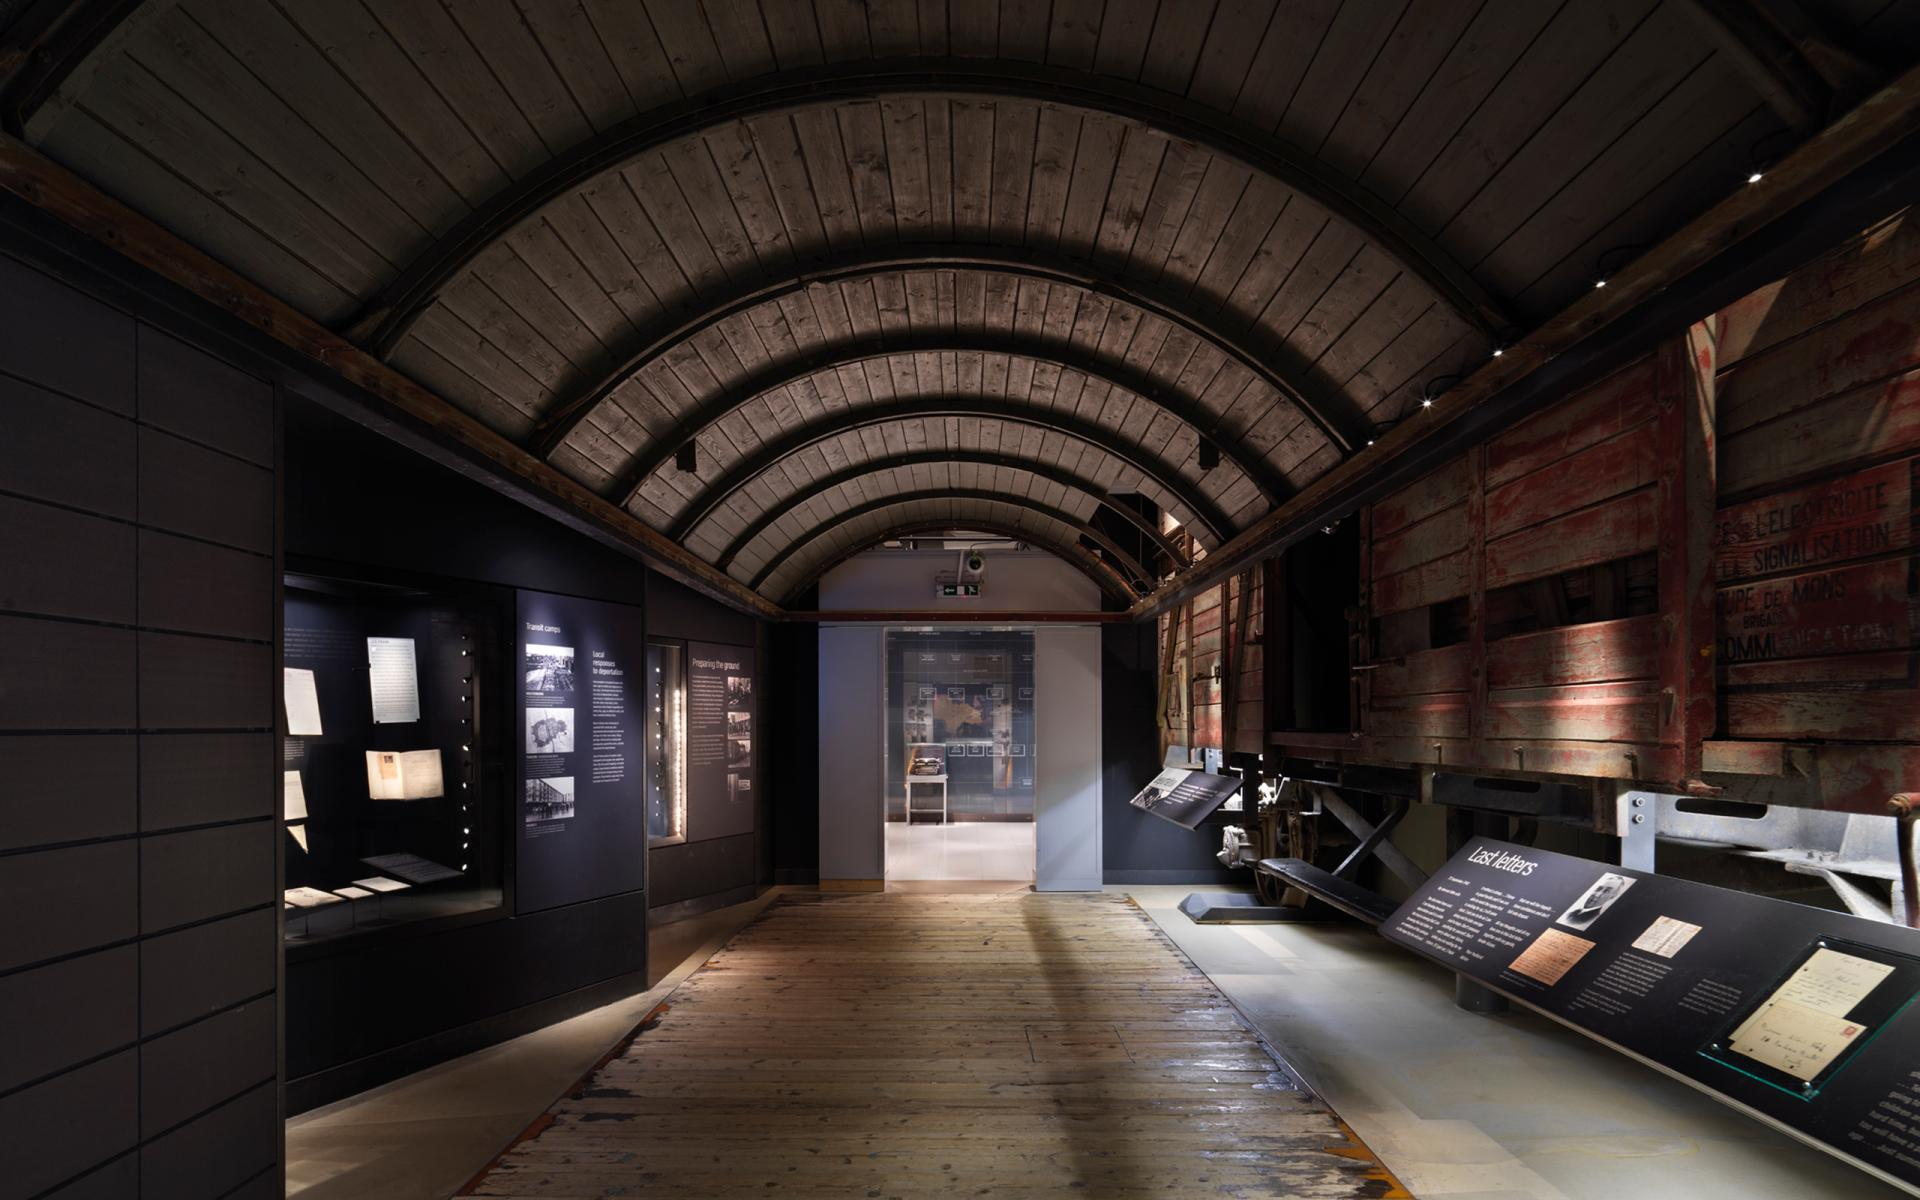 The Holocaust Exhibition at IWM London